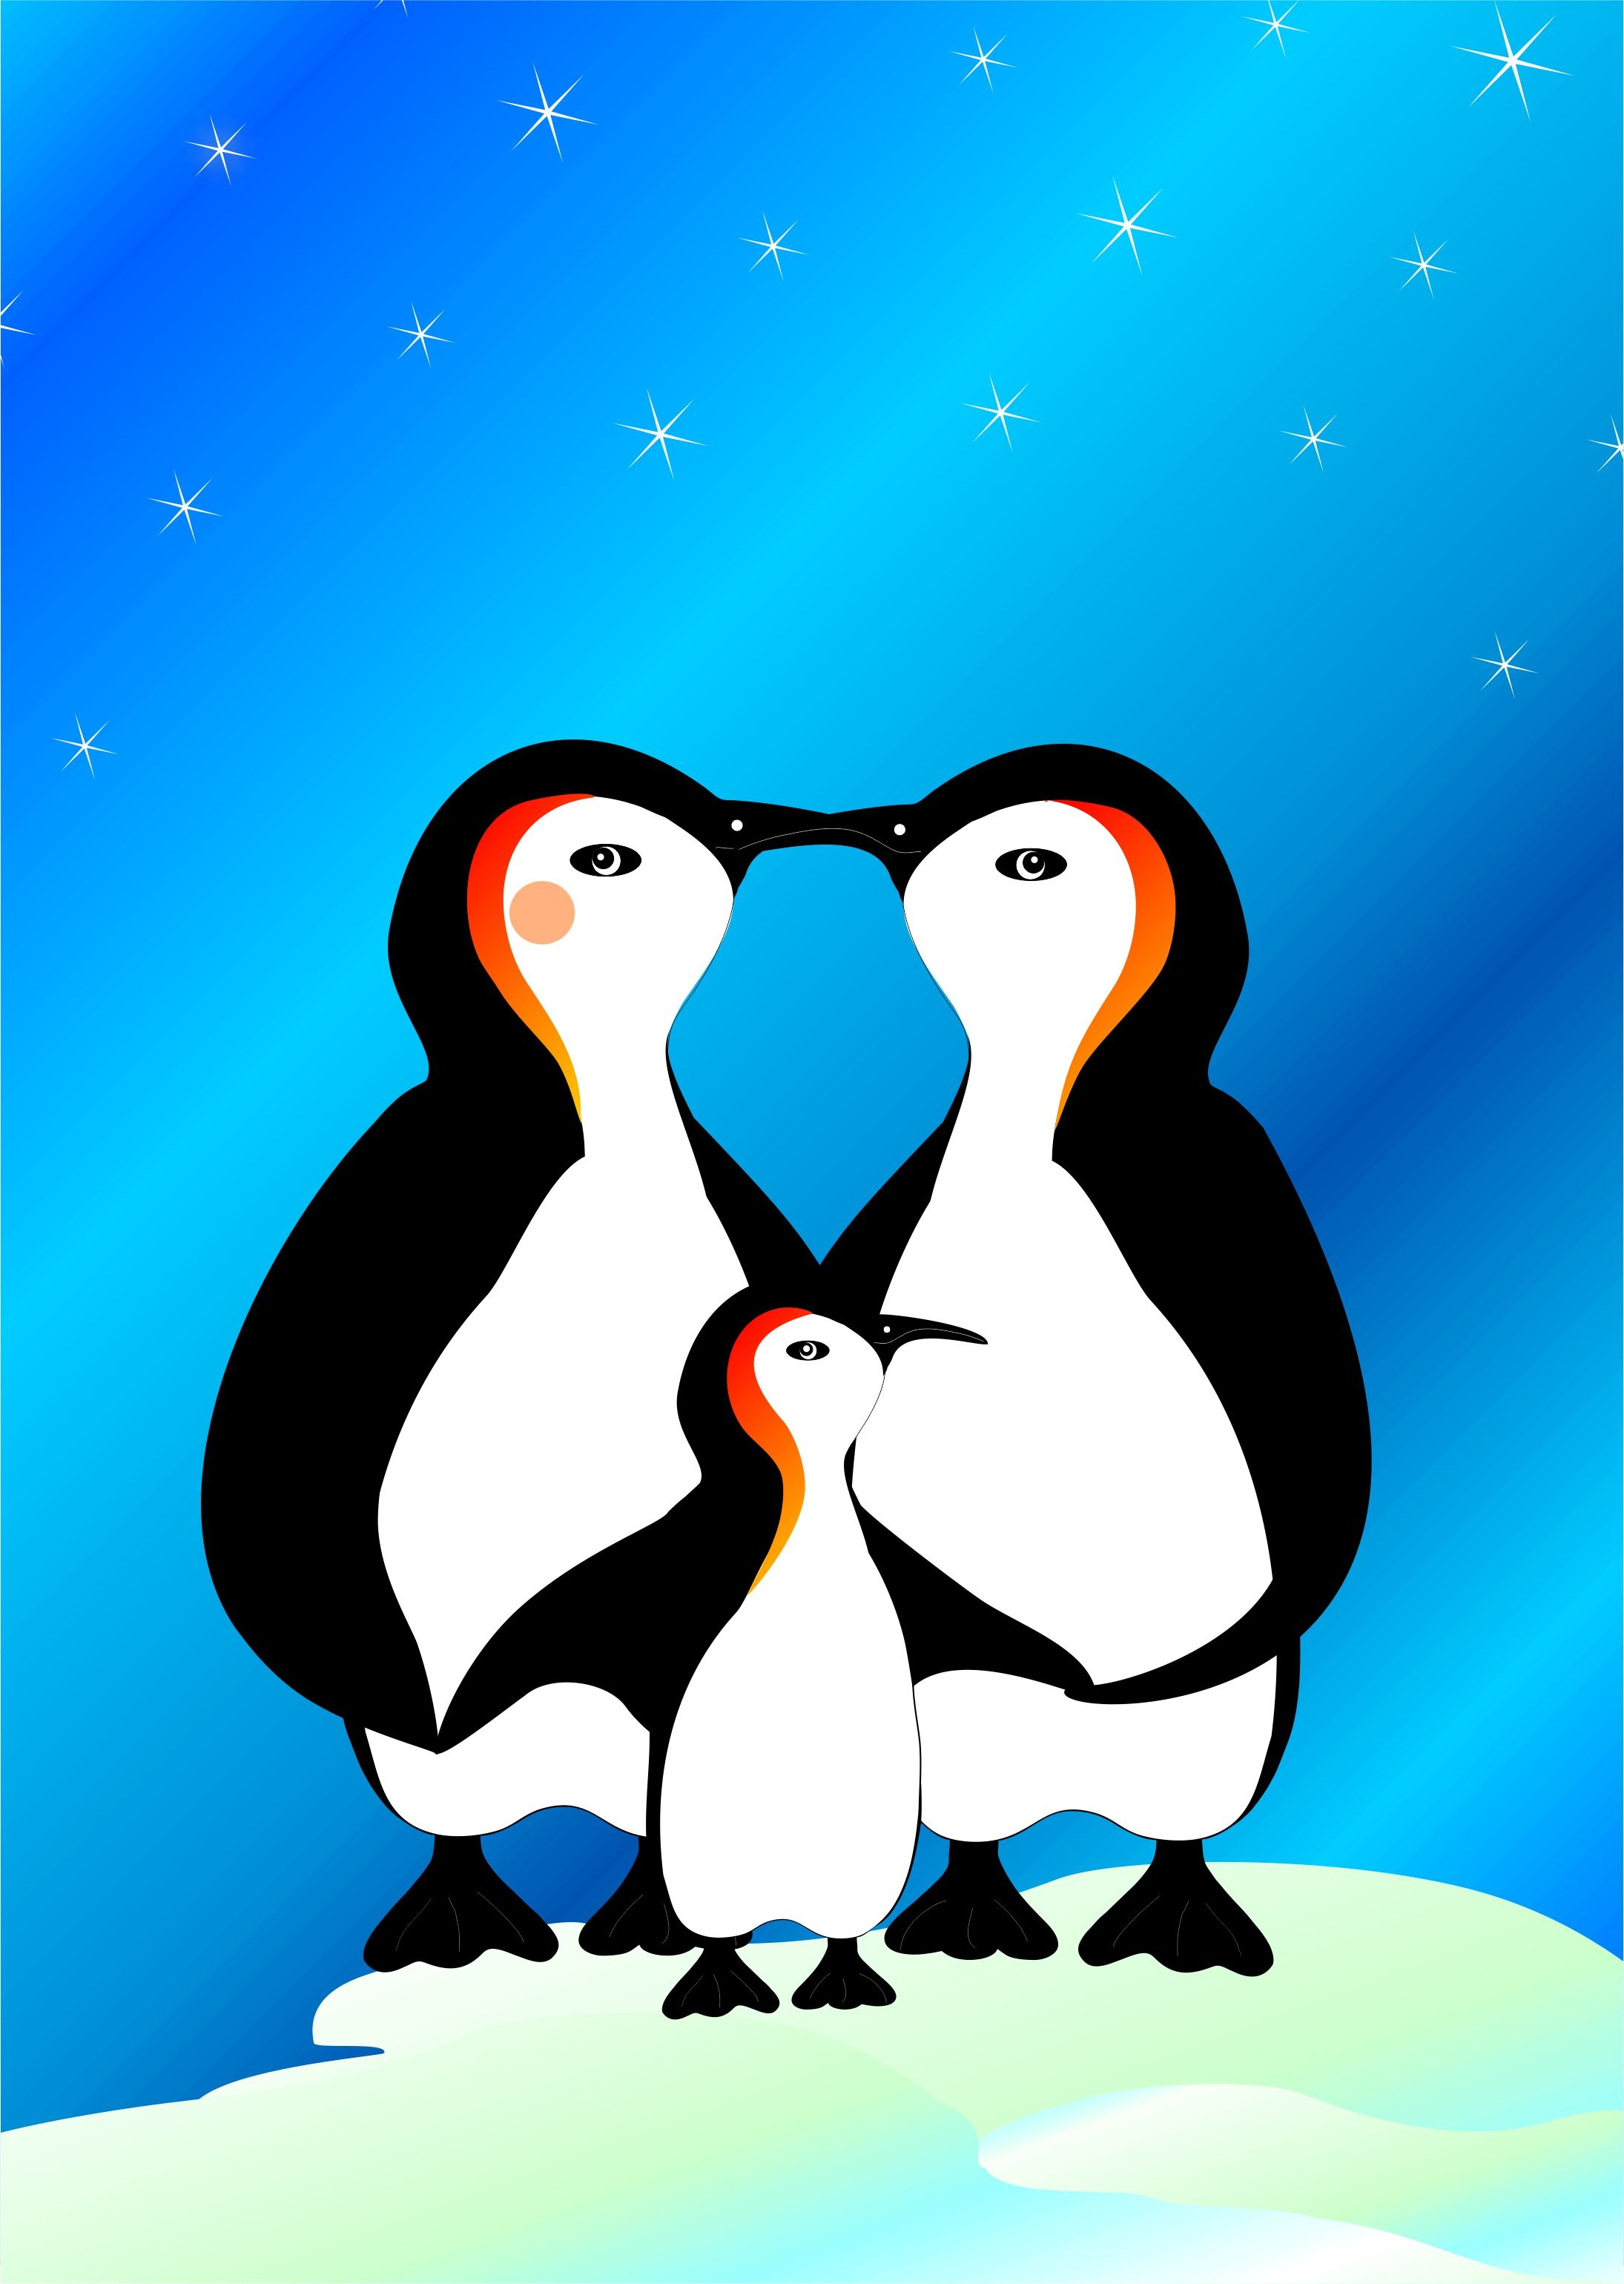 Download wallpaper 2190x3080 penguins art family love hd background 2190x3080